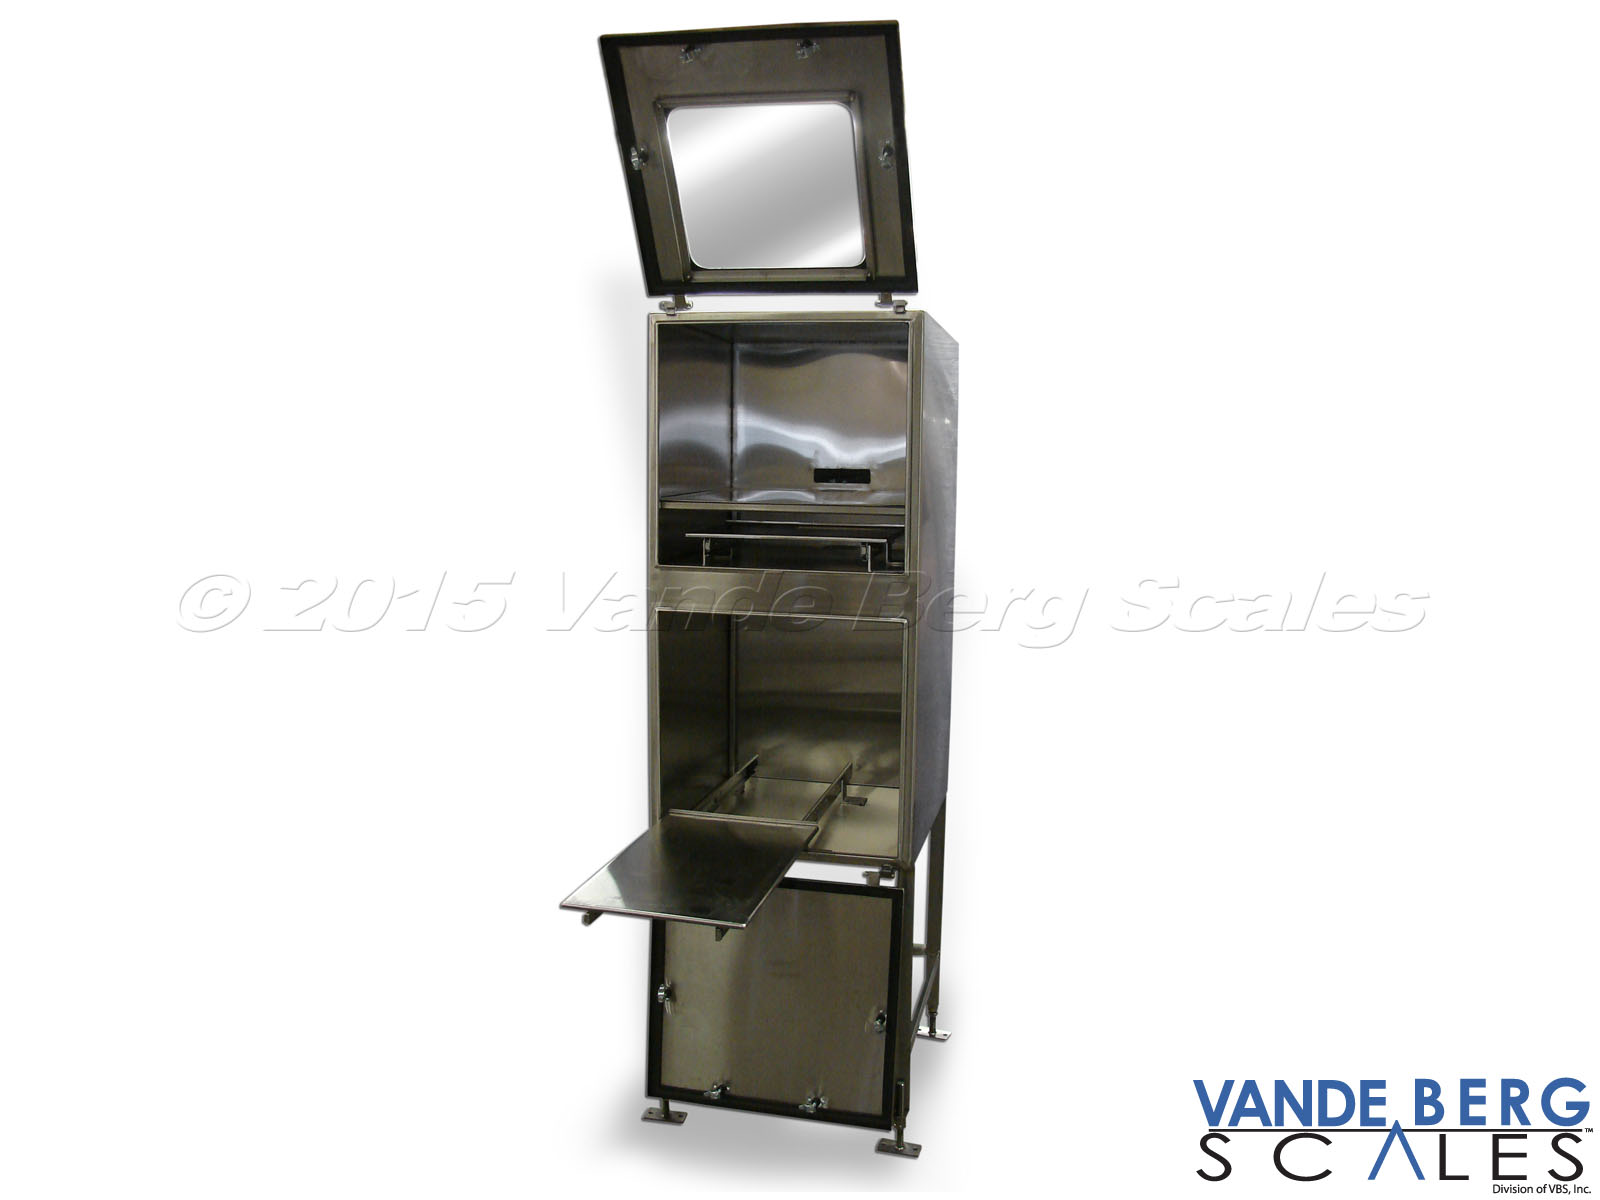 Large Stainless Steel Washdown Cabinets Nema 4x Rated